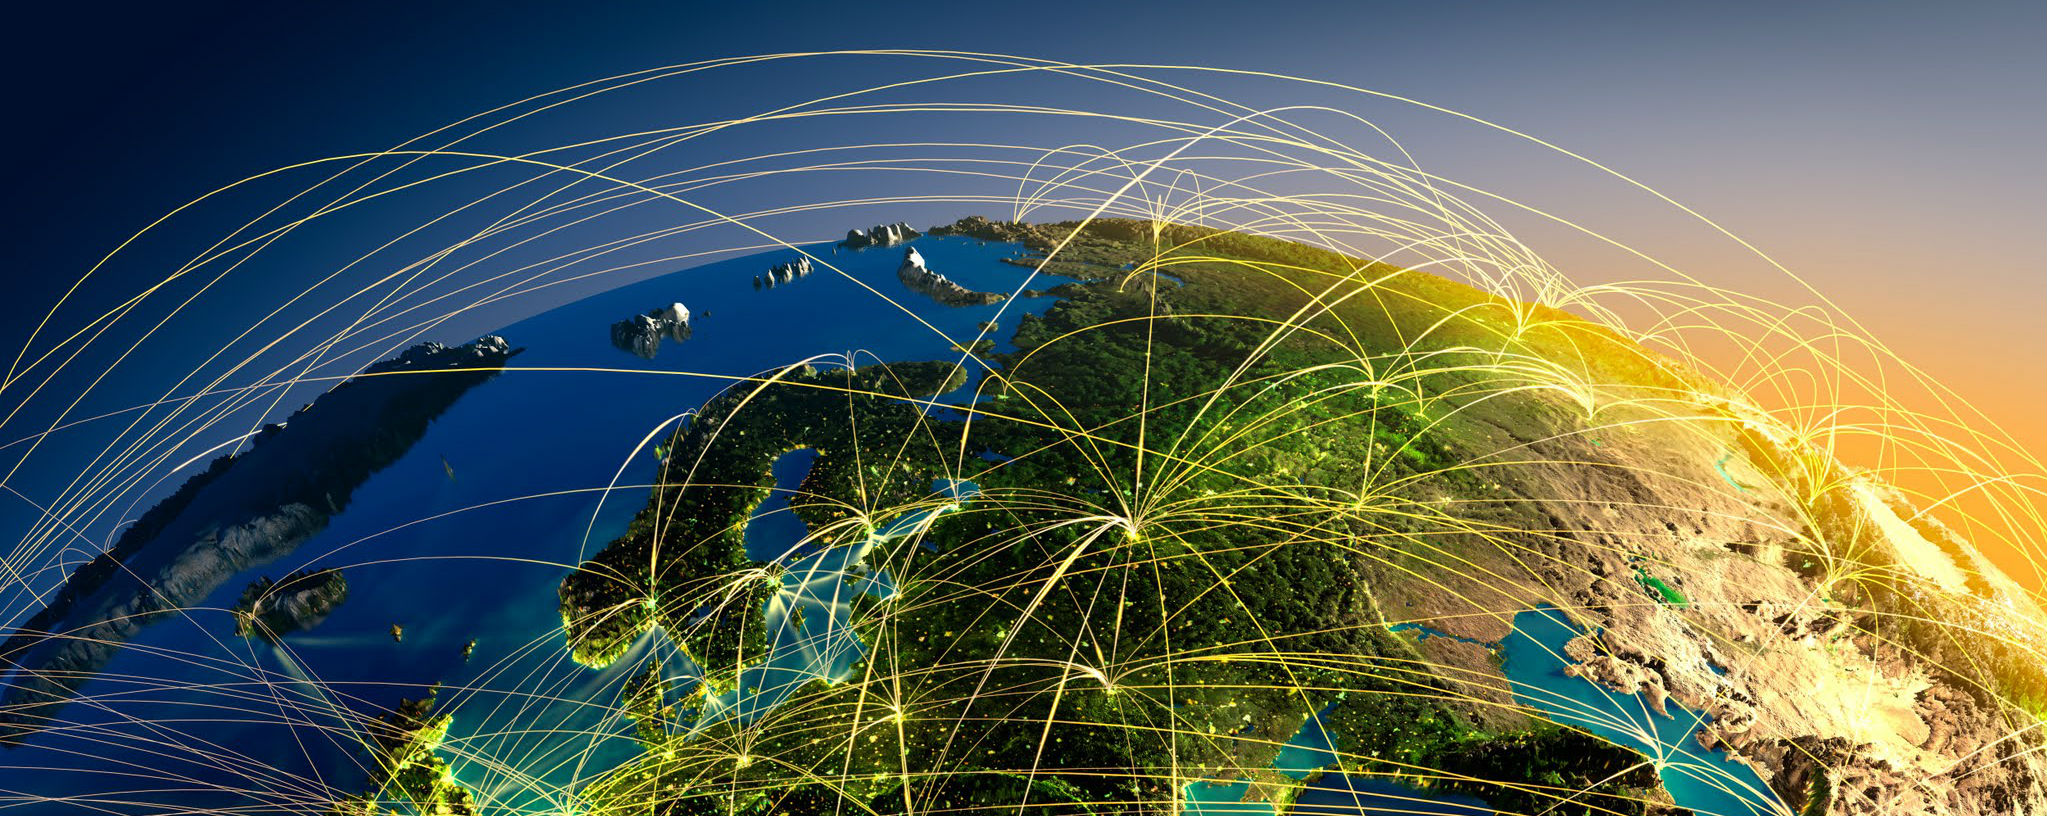 How Does Globalization Affect an Organization's Business Approach?